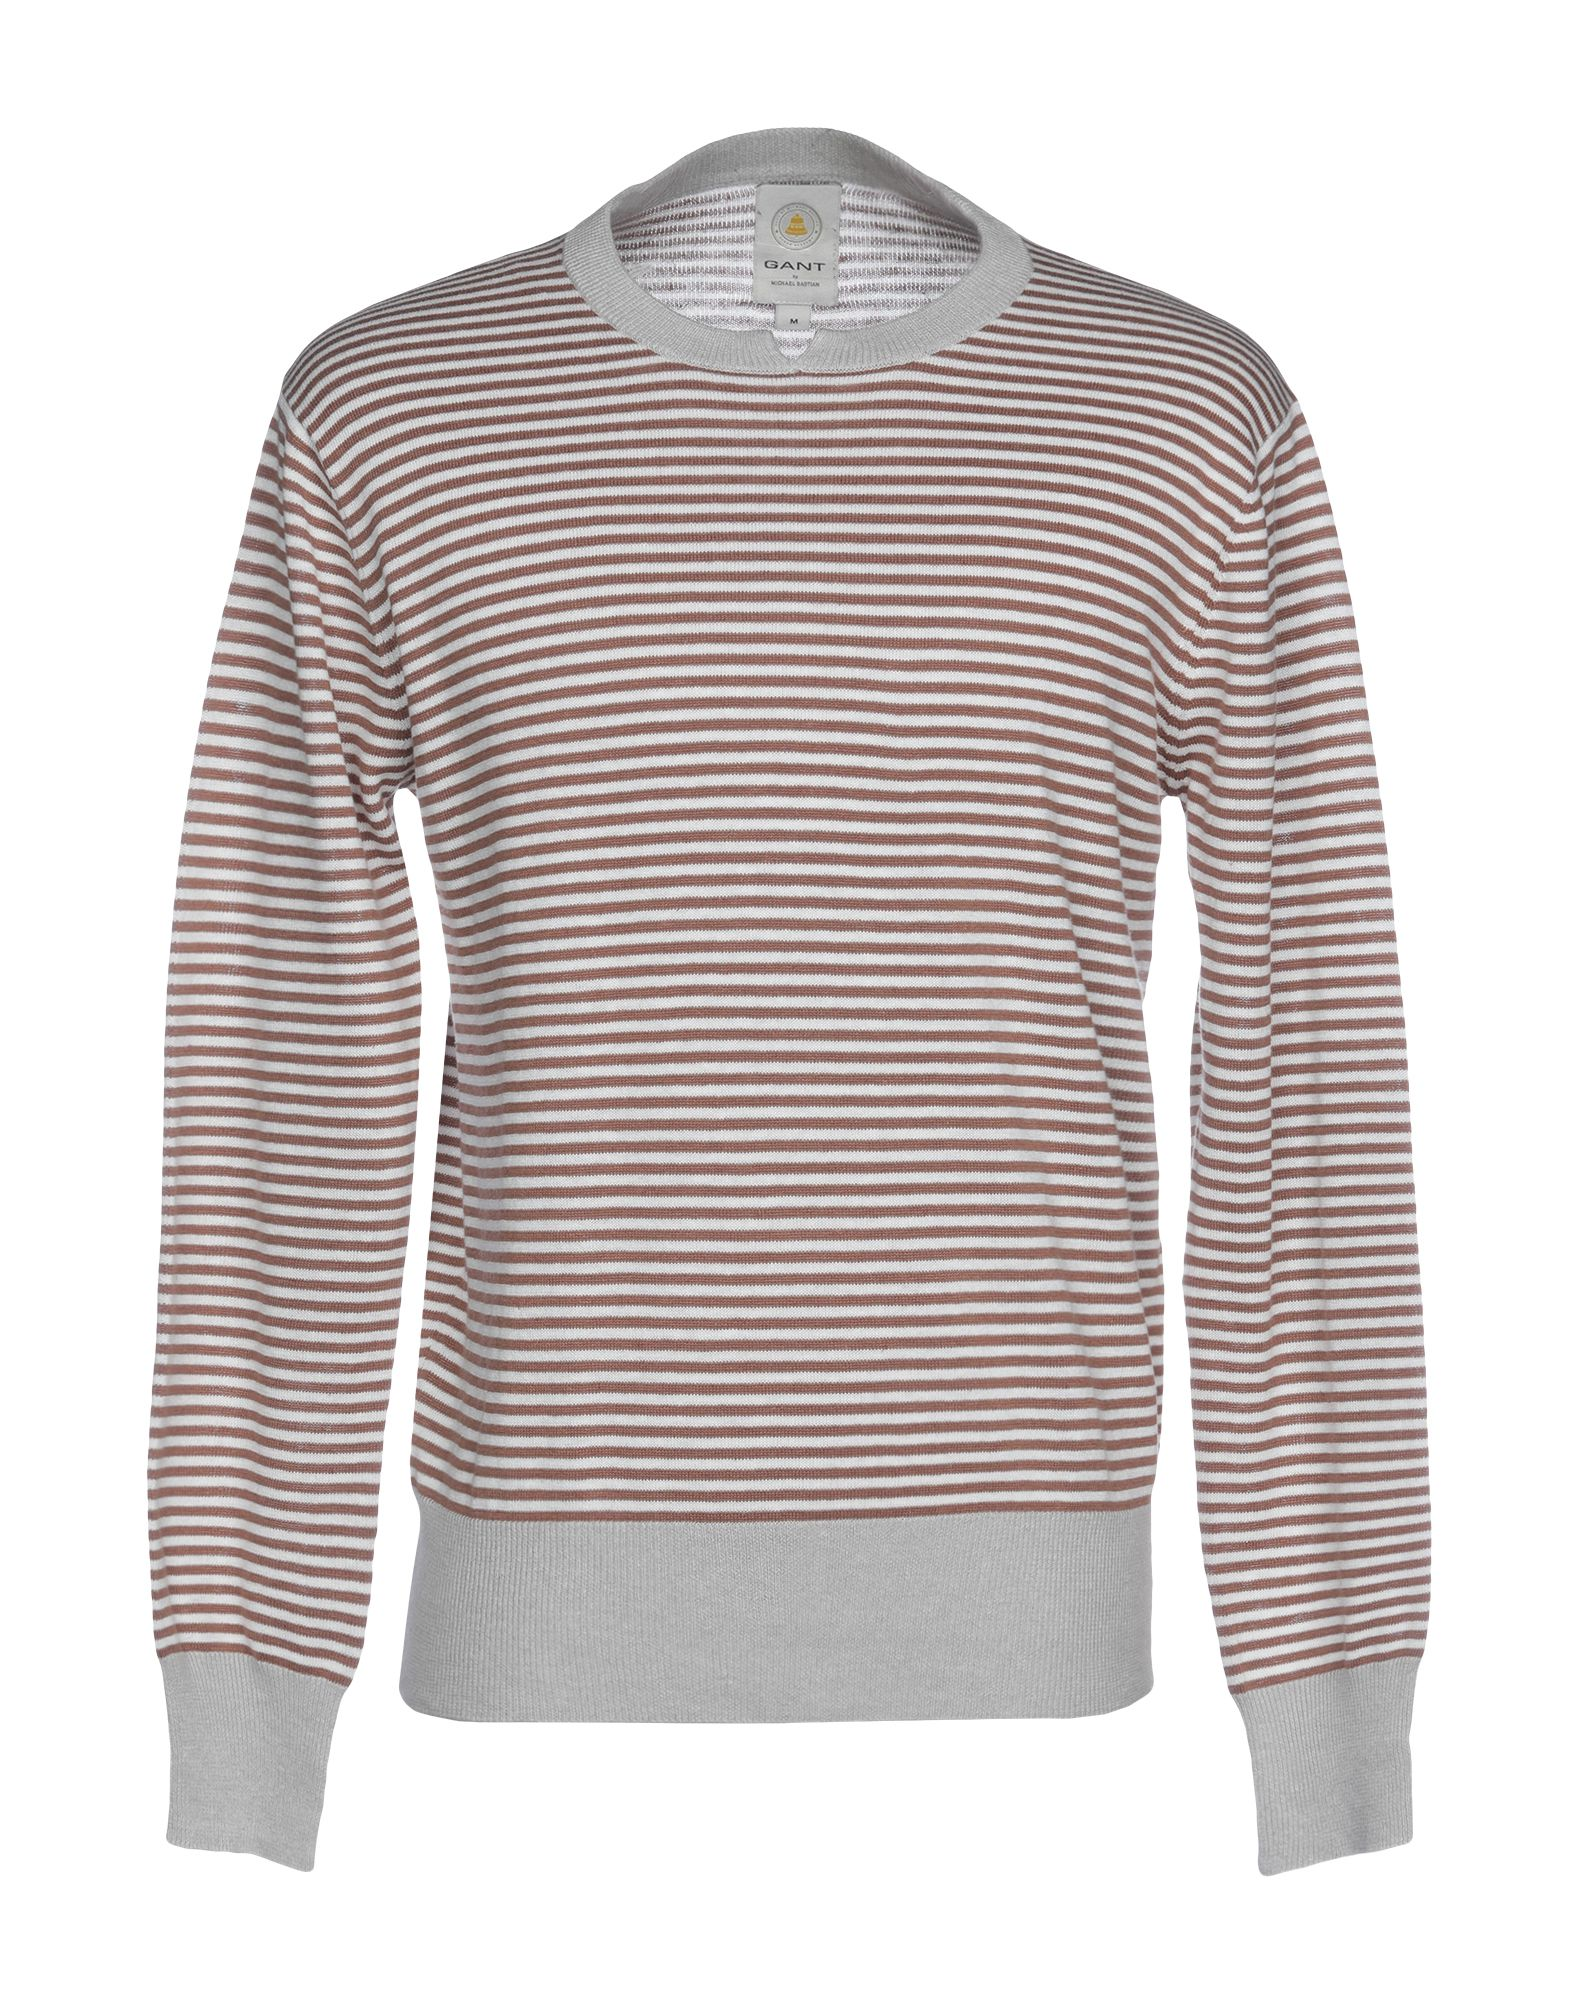 GANT BY MICHAEL BASTIAN Sweaters in Brown